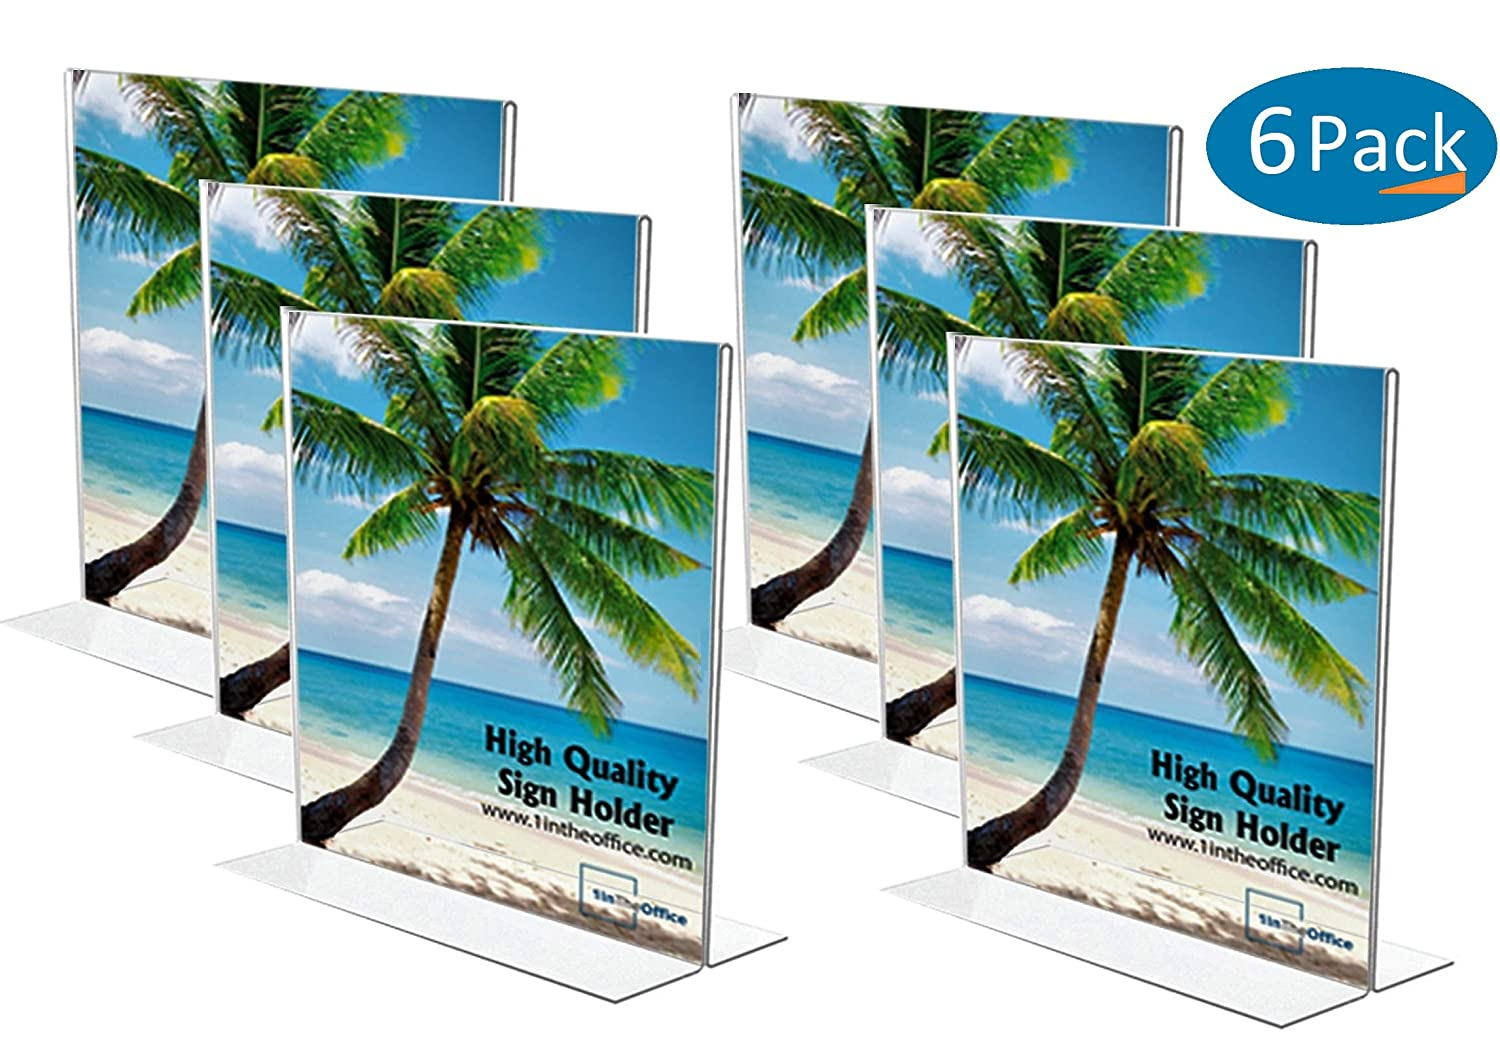 """1InTheOffice Vertical Stand-Up Sign Holder 8.5 x 11""""6 Pack"""""""